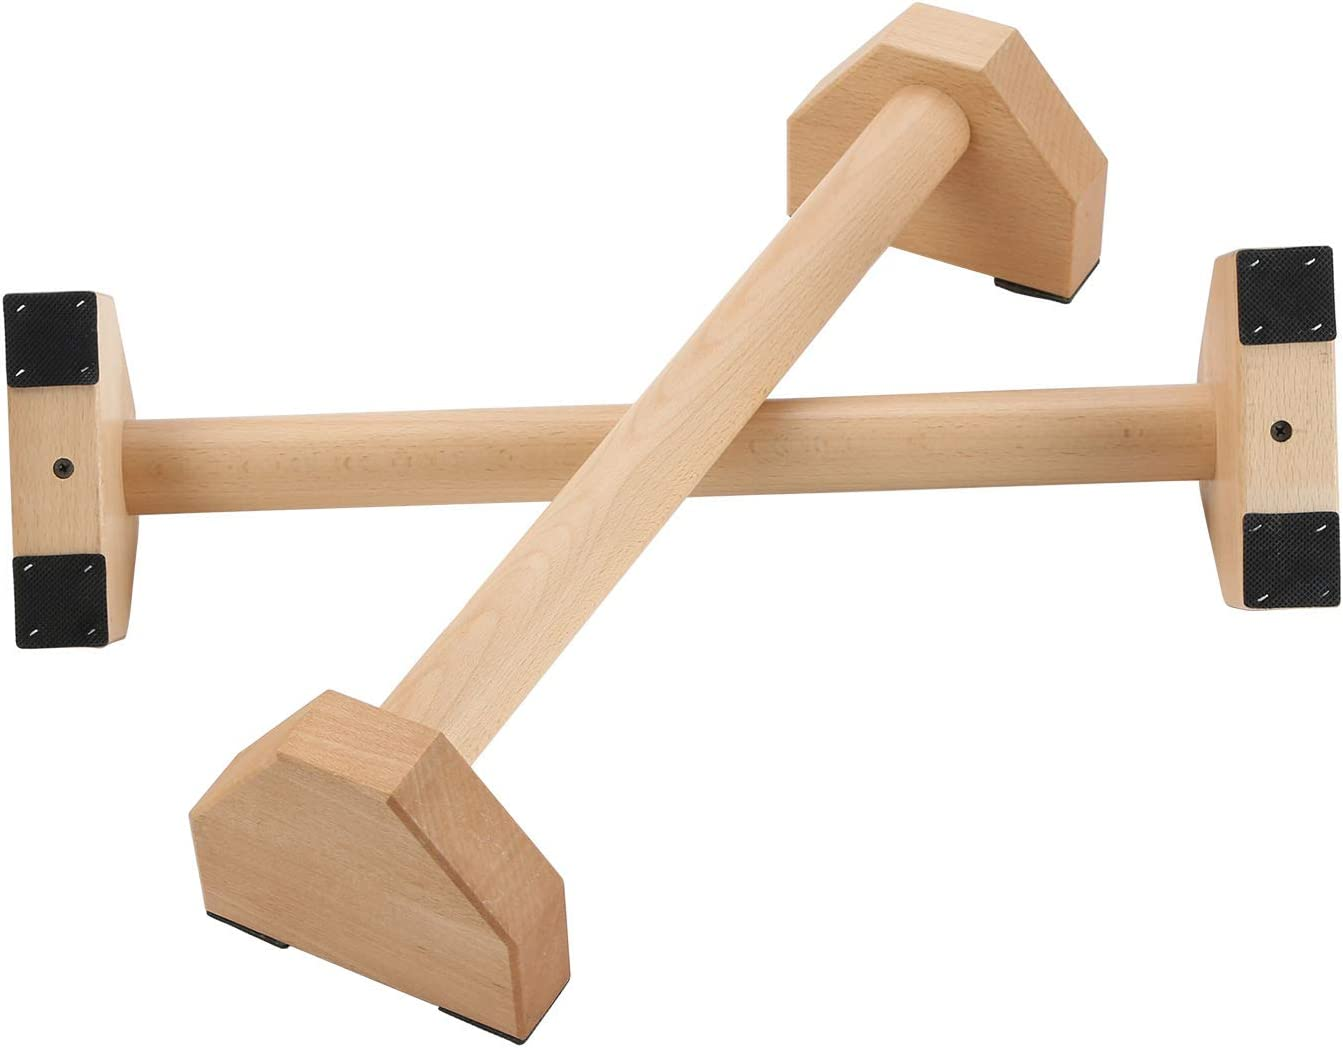 Pushup Stands - OFFicial store Wooden Push Up Bars with Equipment Gear SALENEW very popular Gym Anti